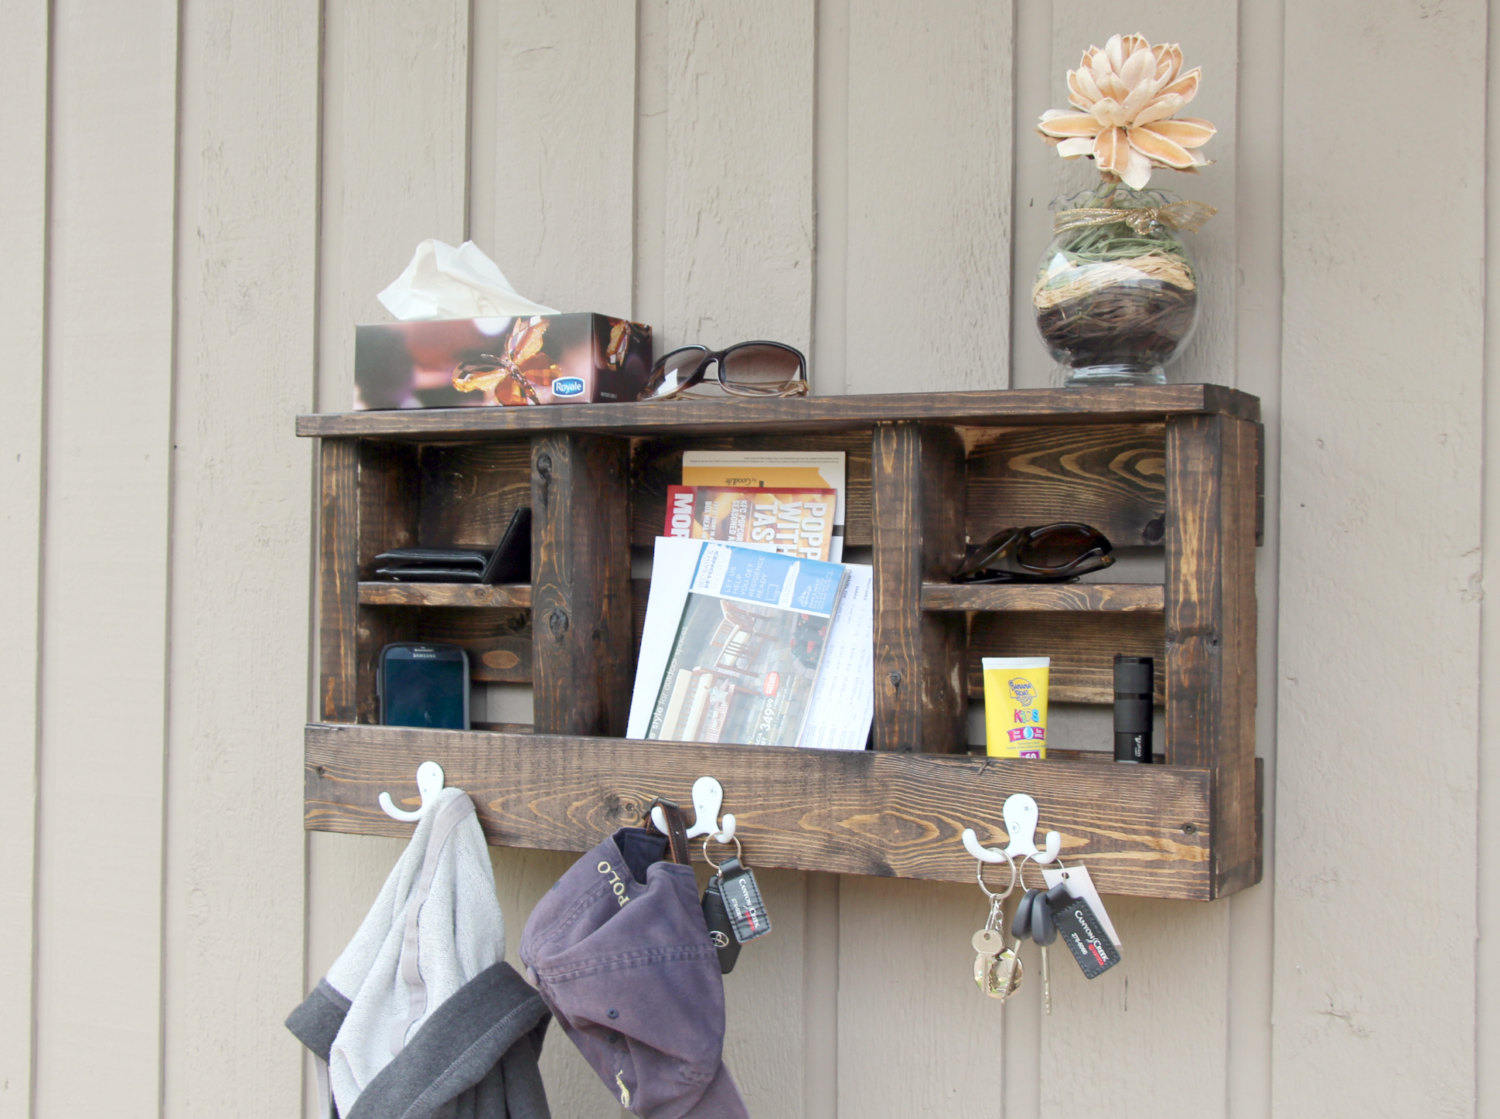 Buy Entryway Key Holder For Wall Mail Holder Wall